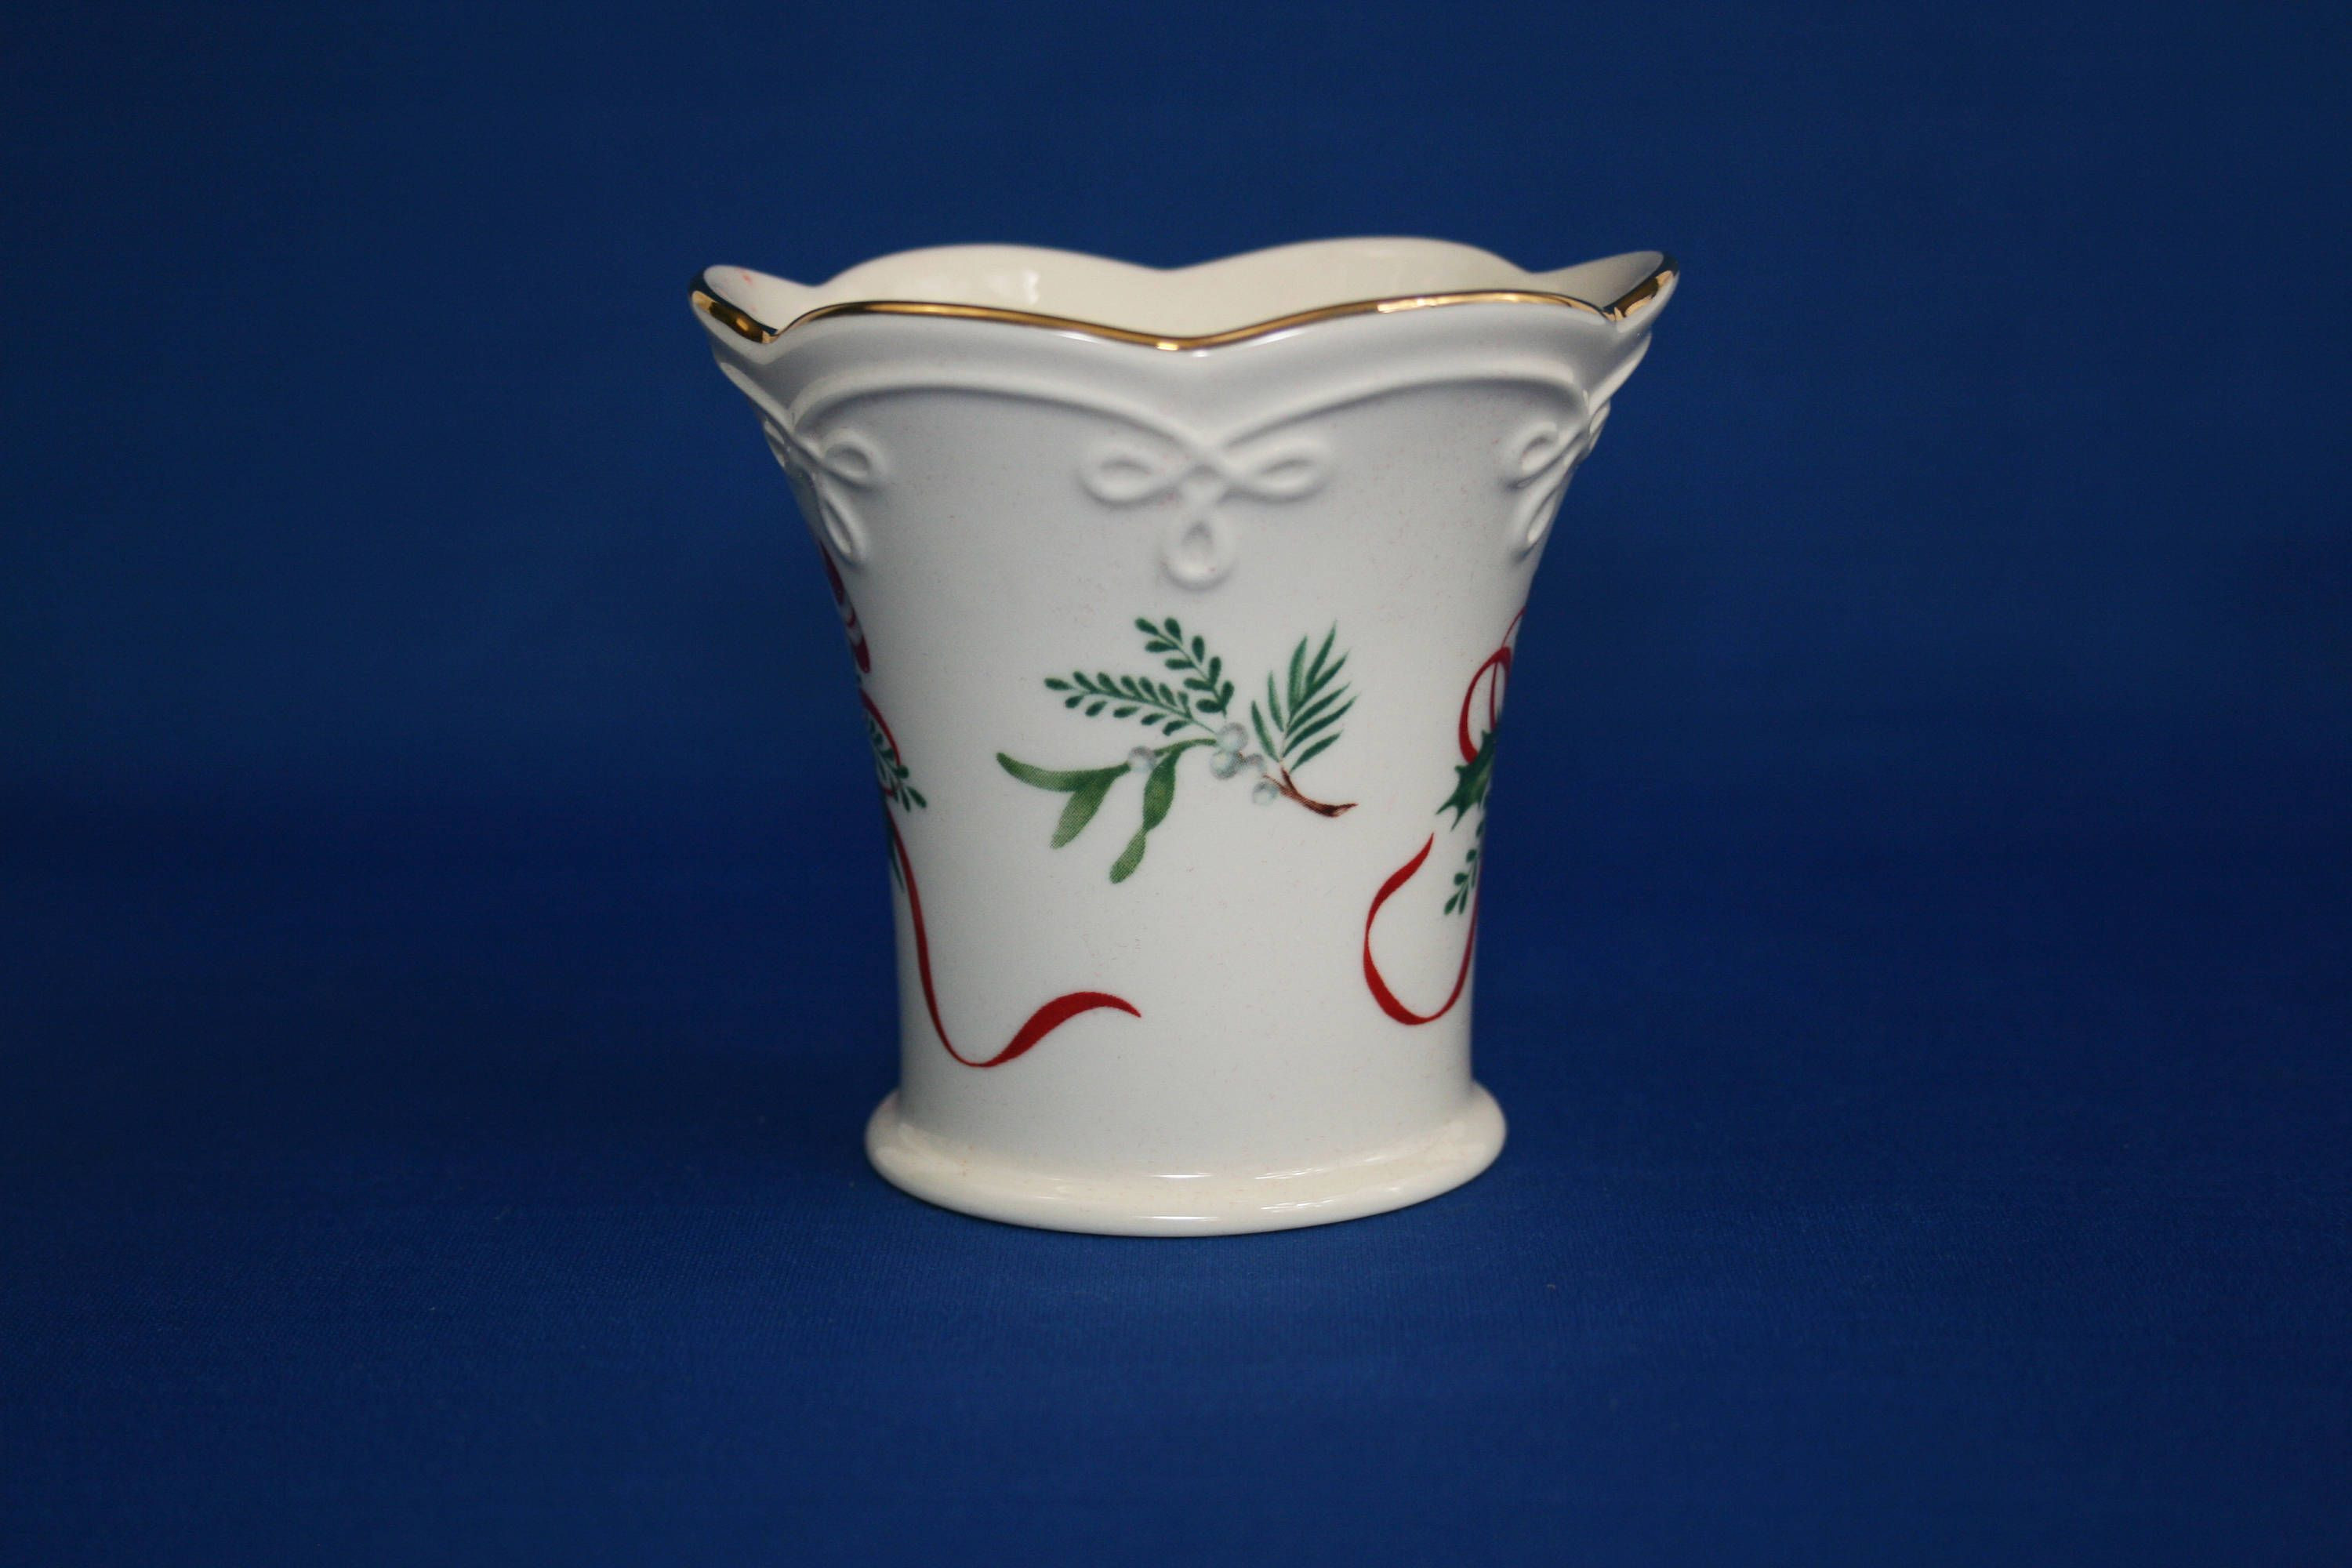 Ivory Ceramic Vase Of 26 Lenox Small Vase the Weekly World Intended for Vintage Lenox China Candy Cane Tea Light Fluted Cup Candle Holder